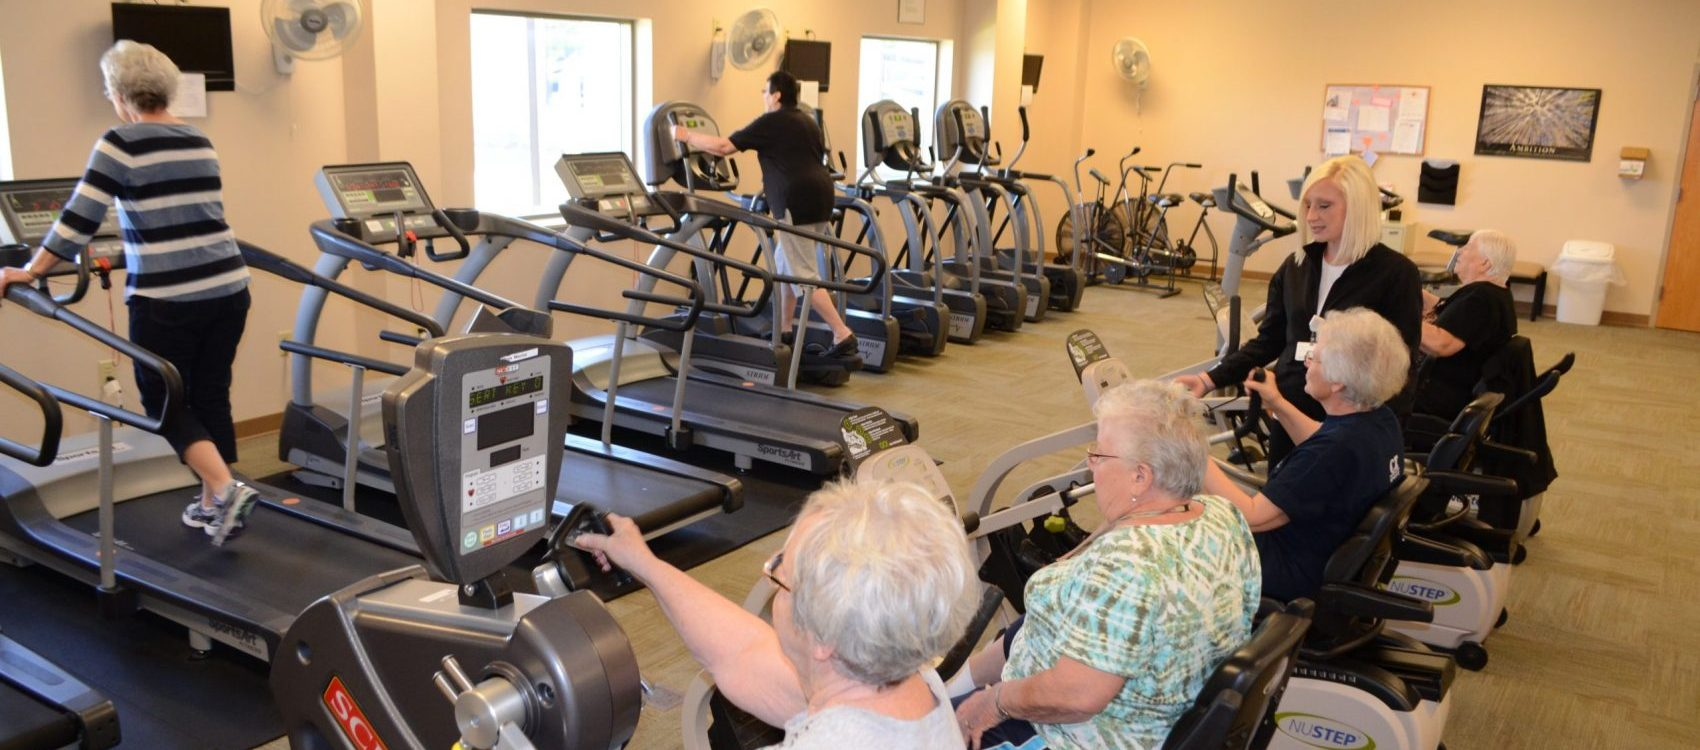 Live Well Fitness Center